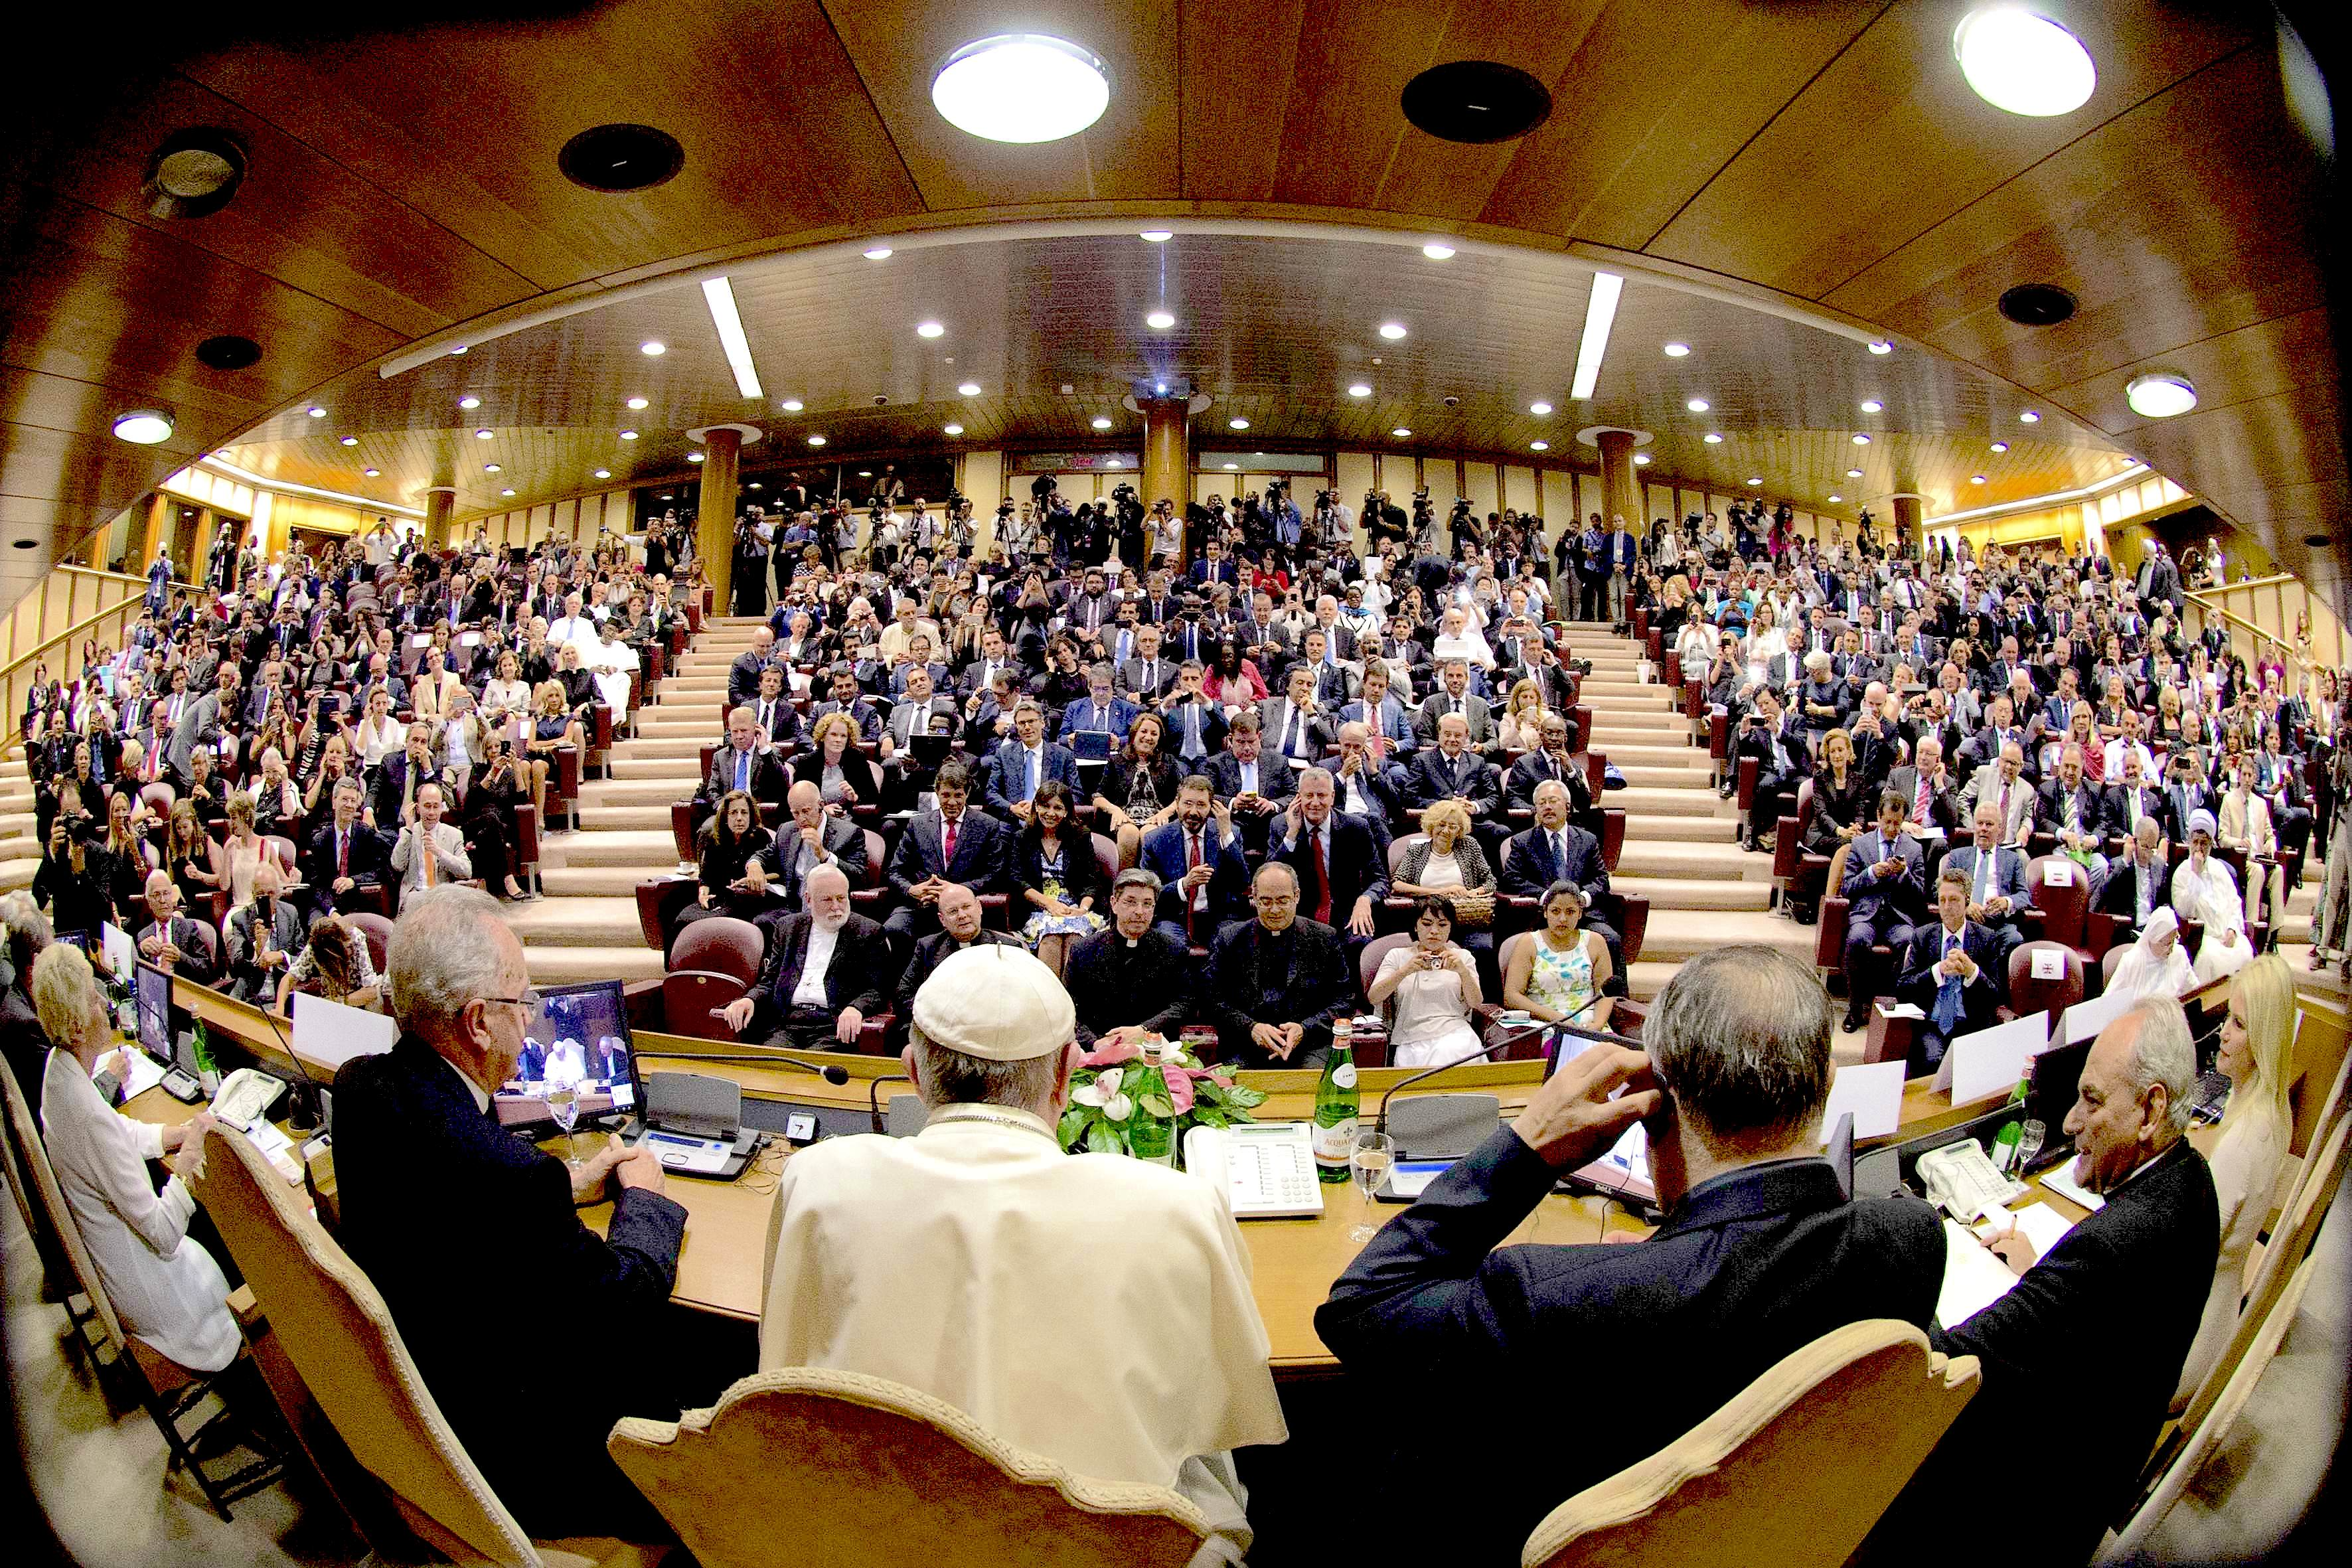 Pope Francis speaking with de mayors of the world in the summit in the Sinodo room. 21 july 2015